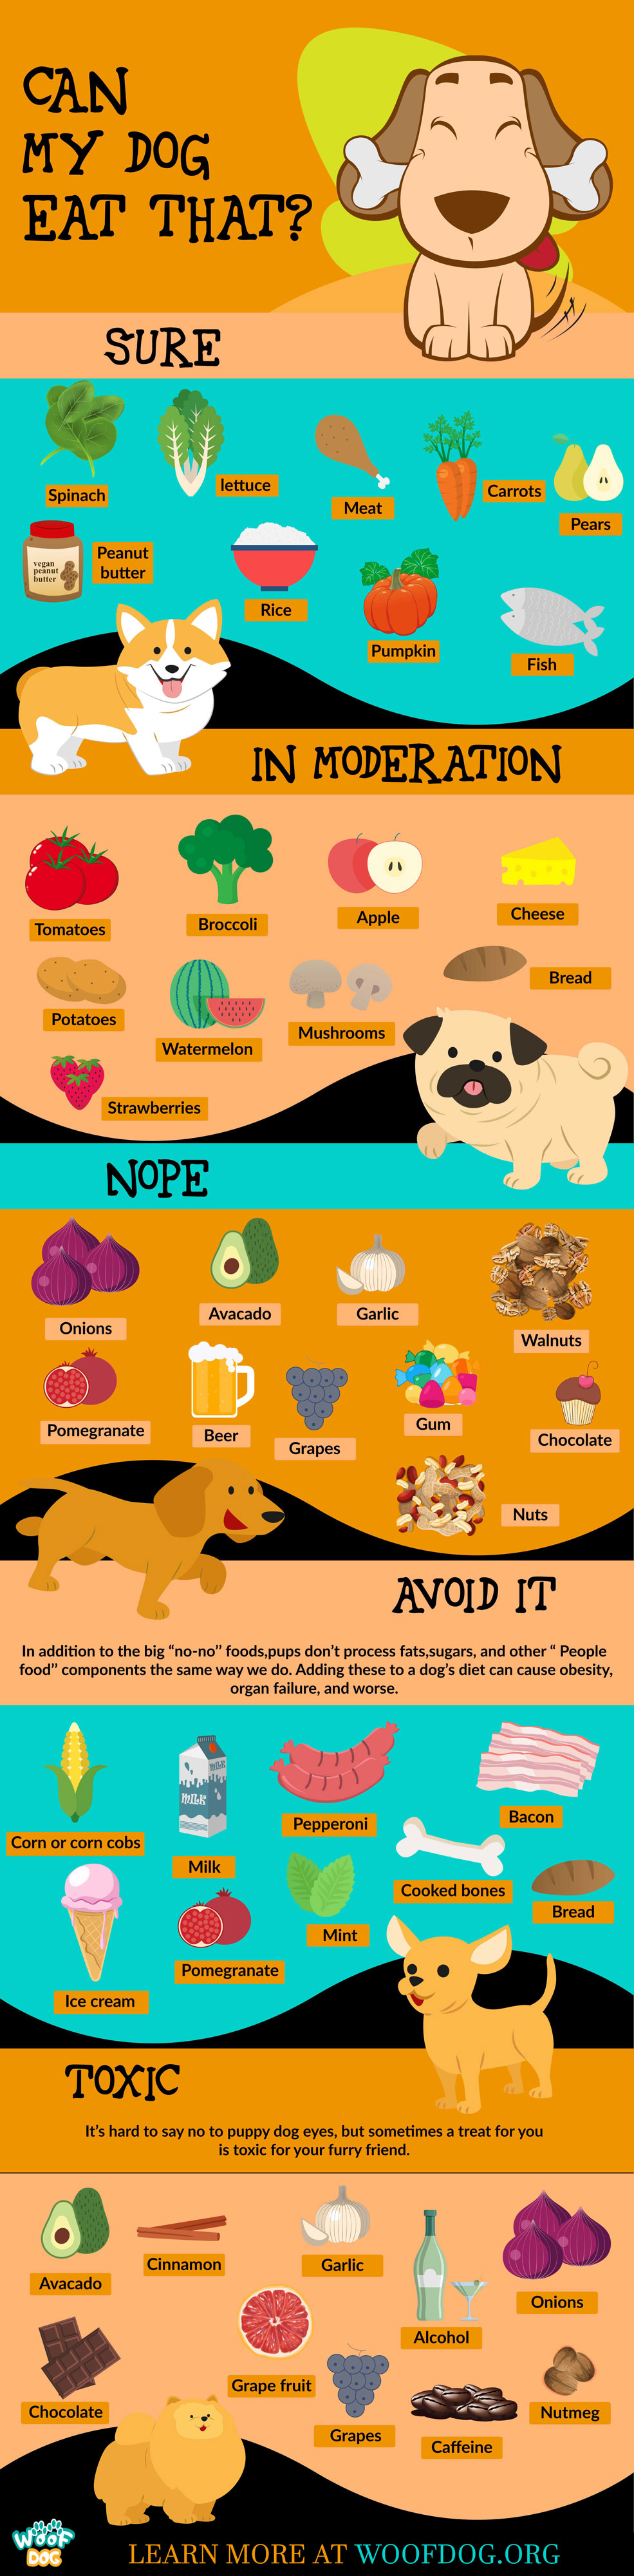 List Of Dangerous Foods For Dogs